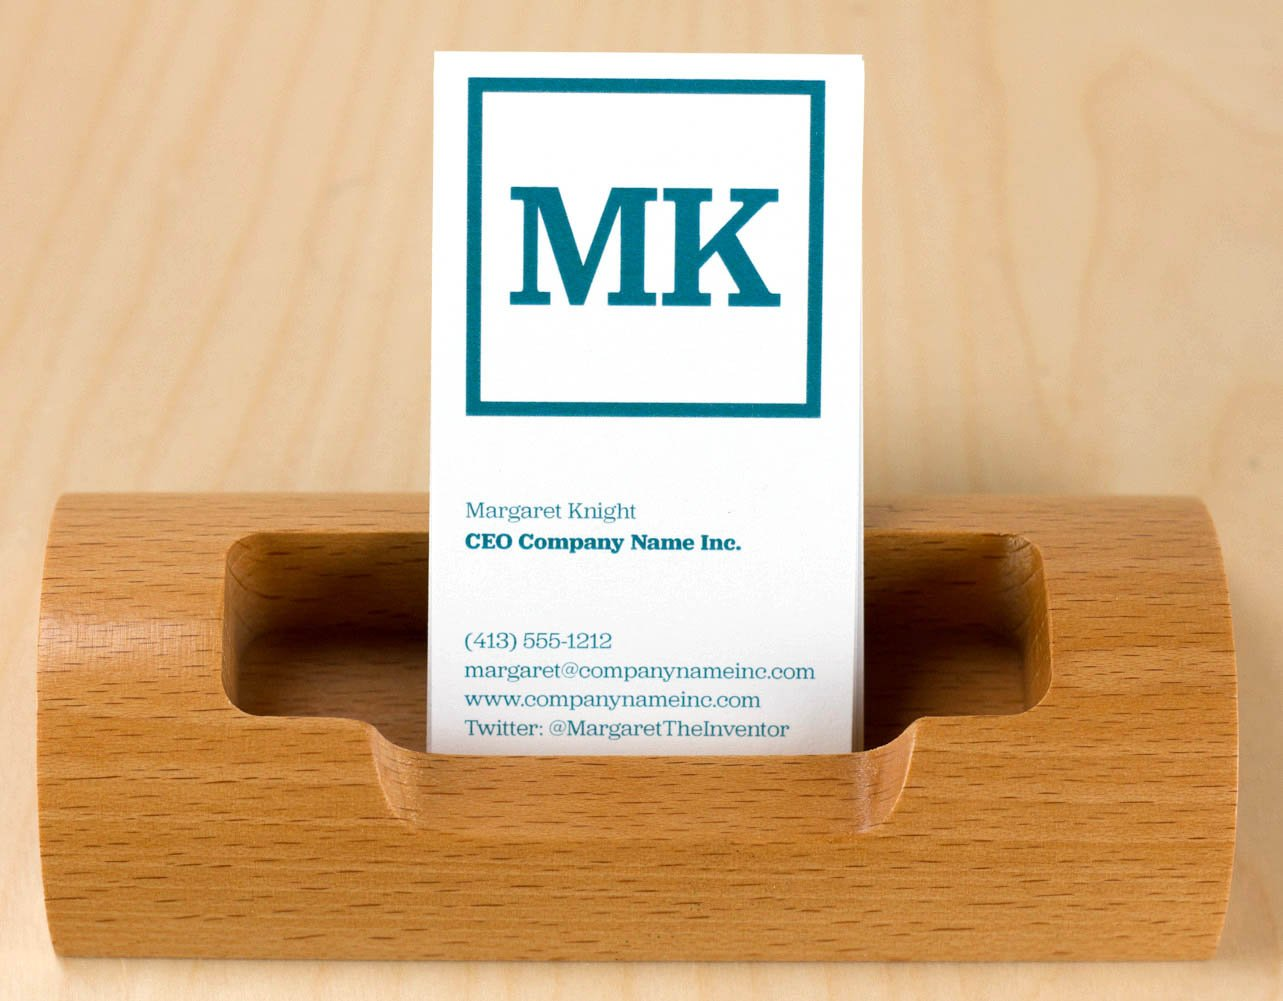 Buttonsmith Custom Ultra Thick Printed Business Cards - 3.5''x2'' - Quantity 500 - Double-Sided, 32 pt Smooth Touch - Made in The USA by Buttonsmith (Image #5)